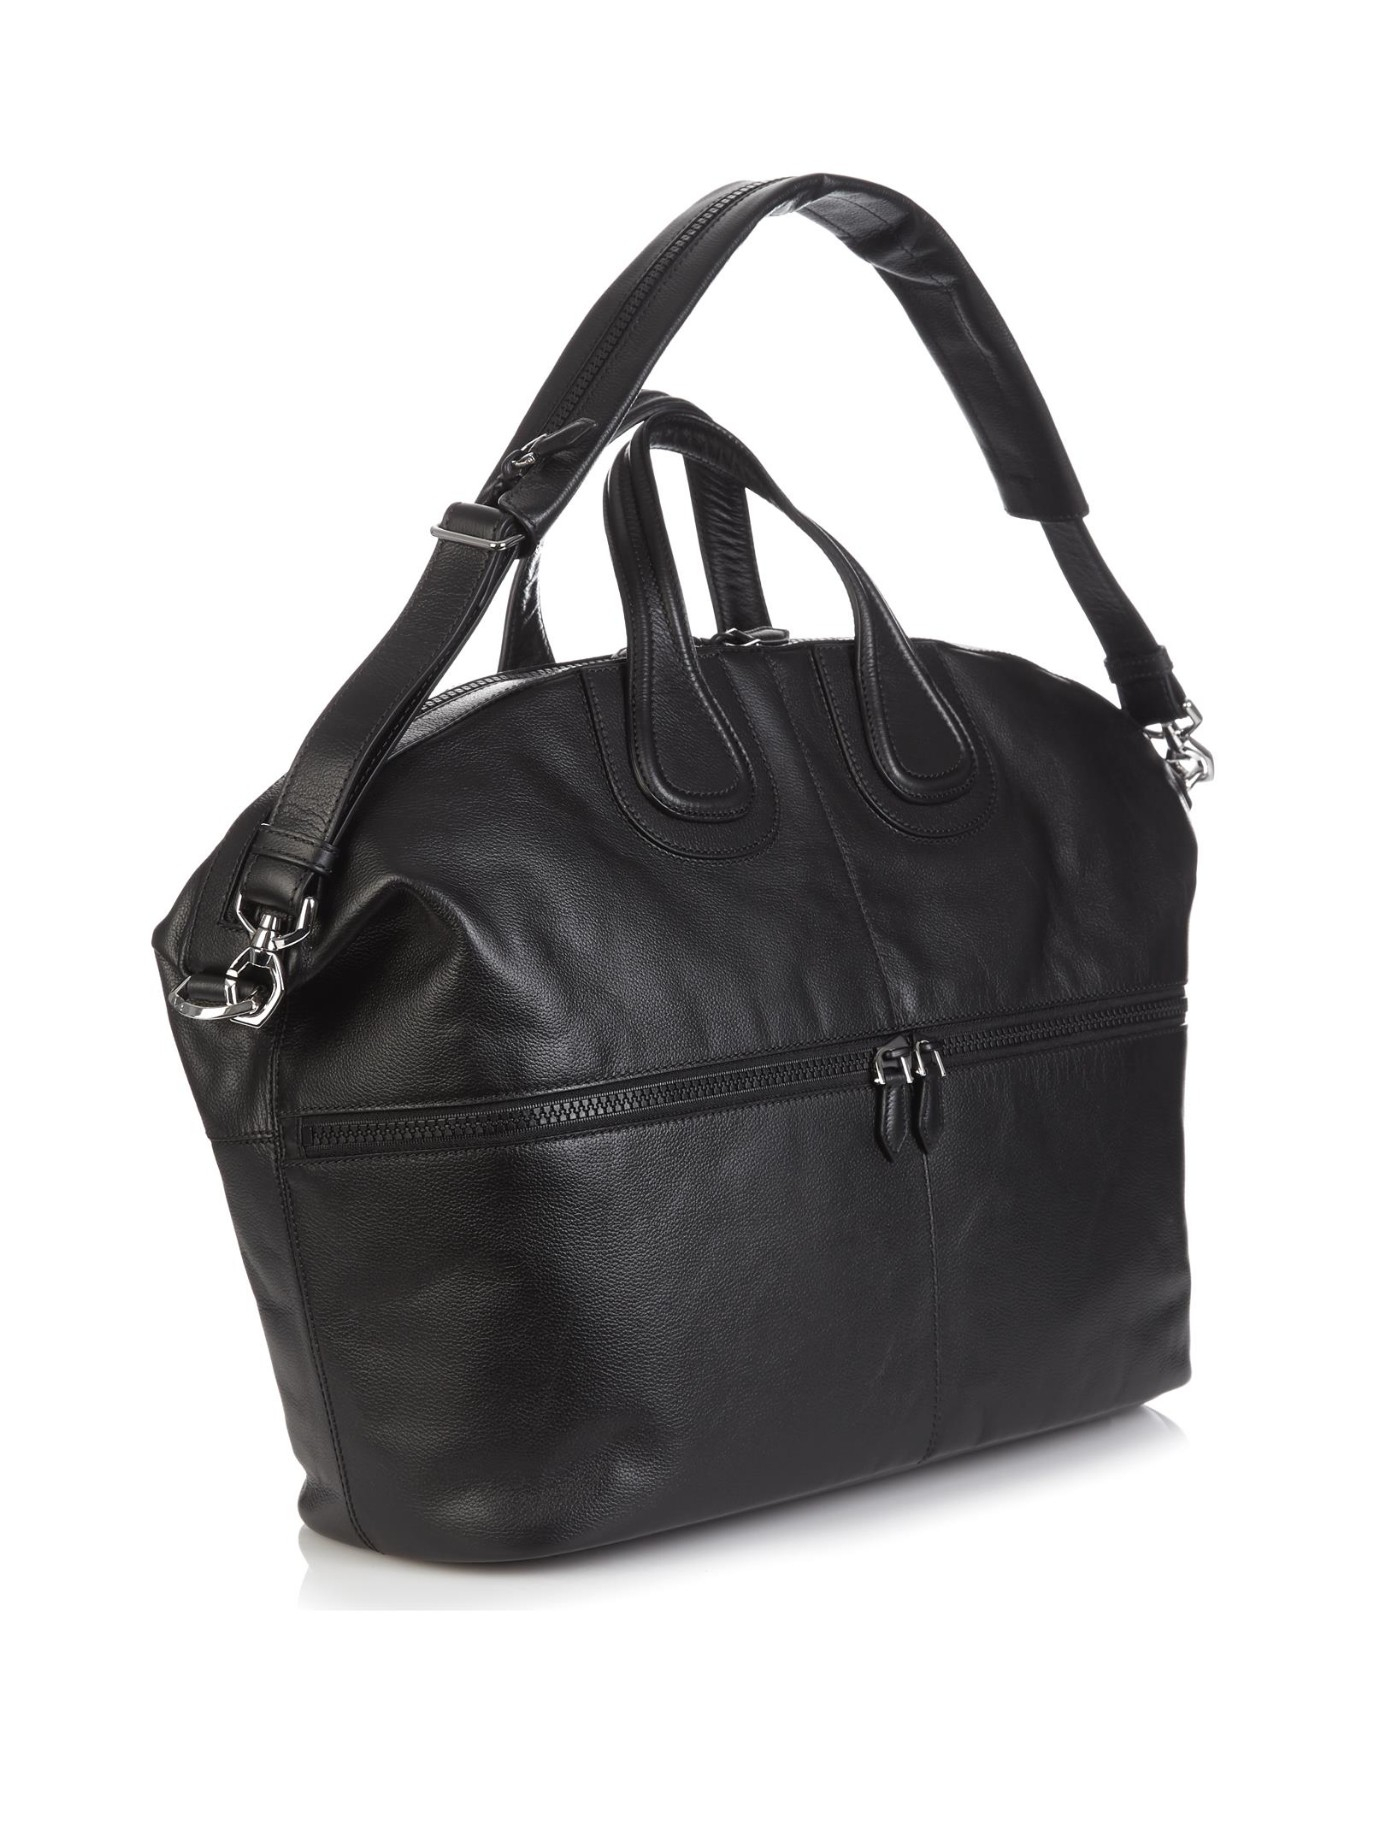 leather weekend bags for men - photo #30